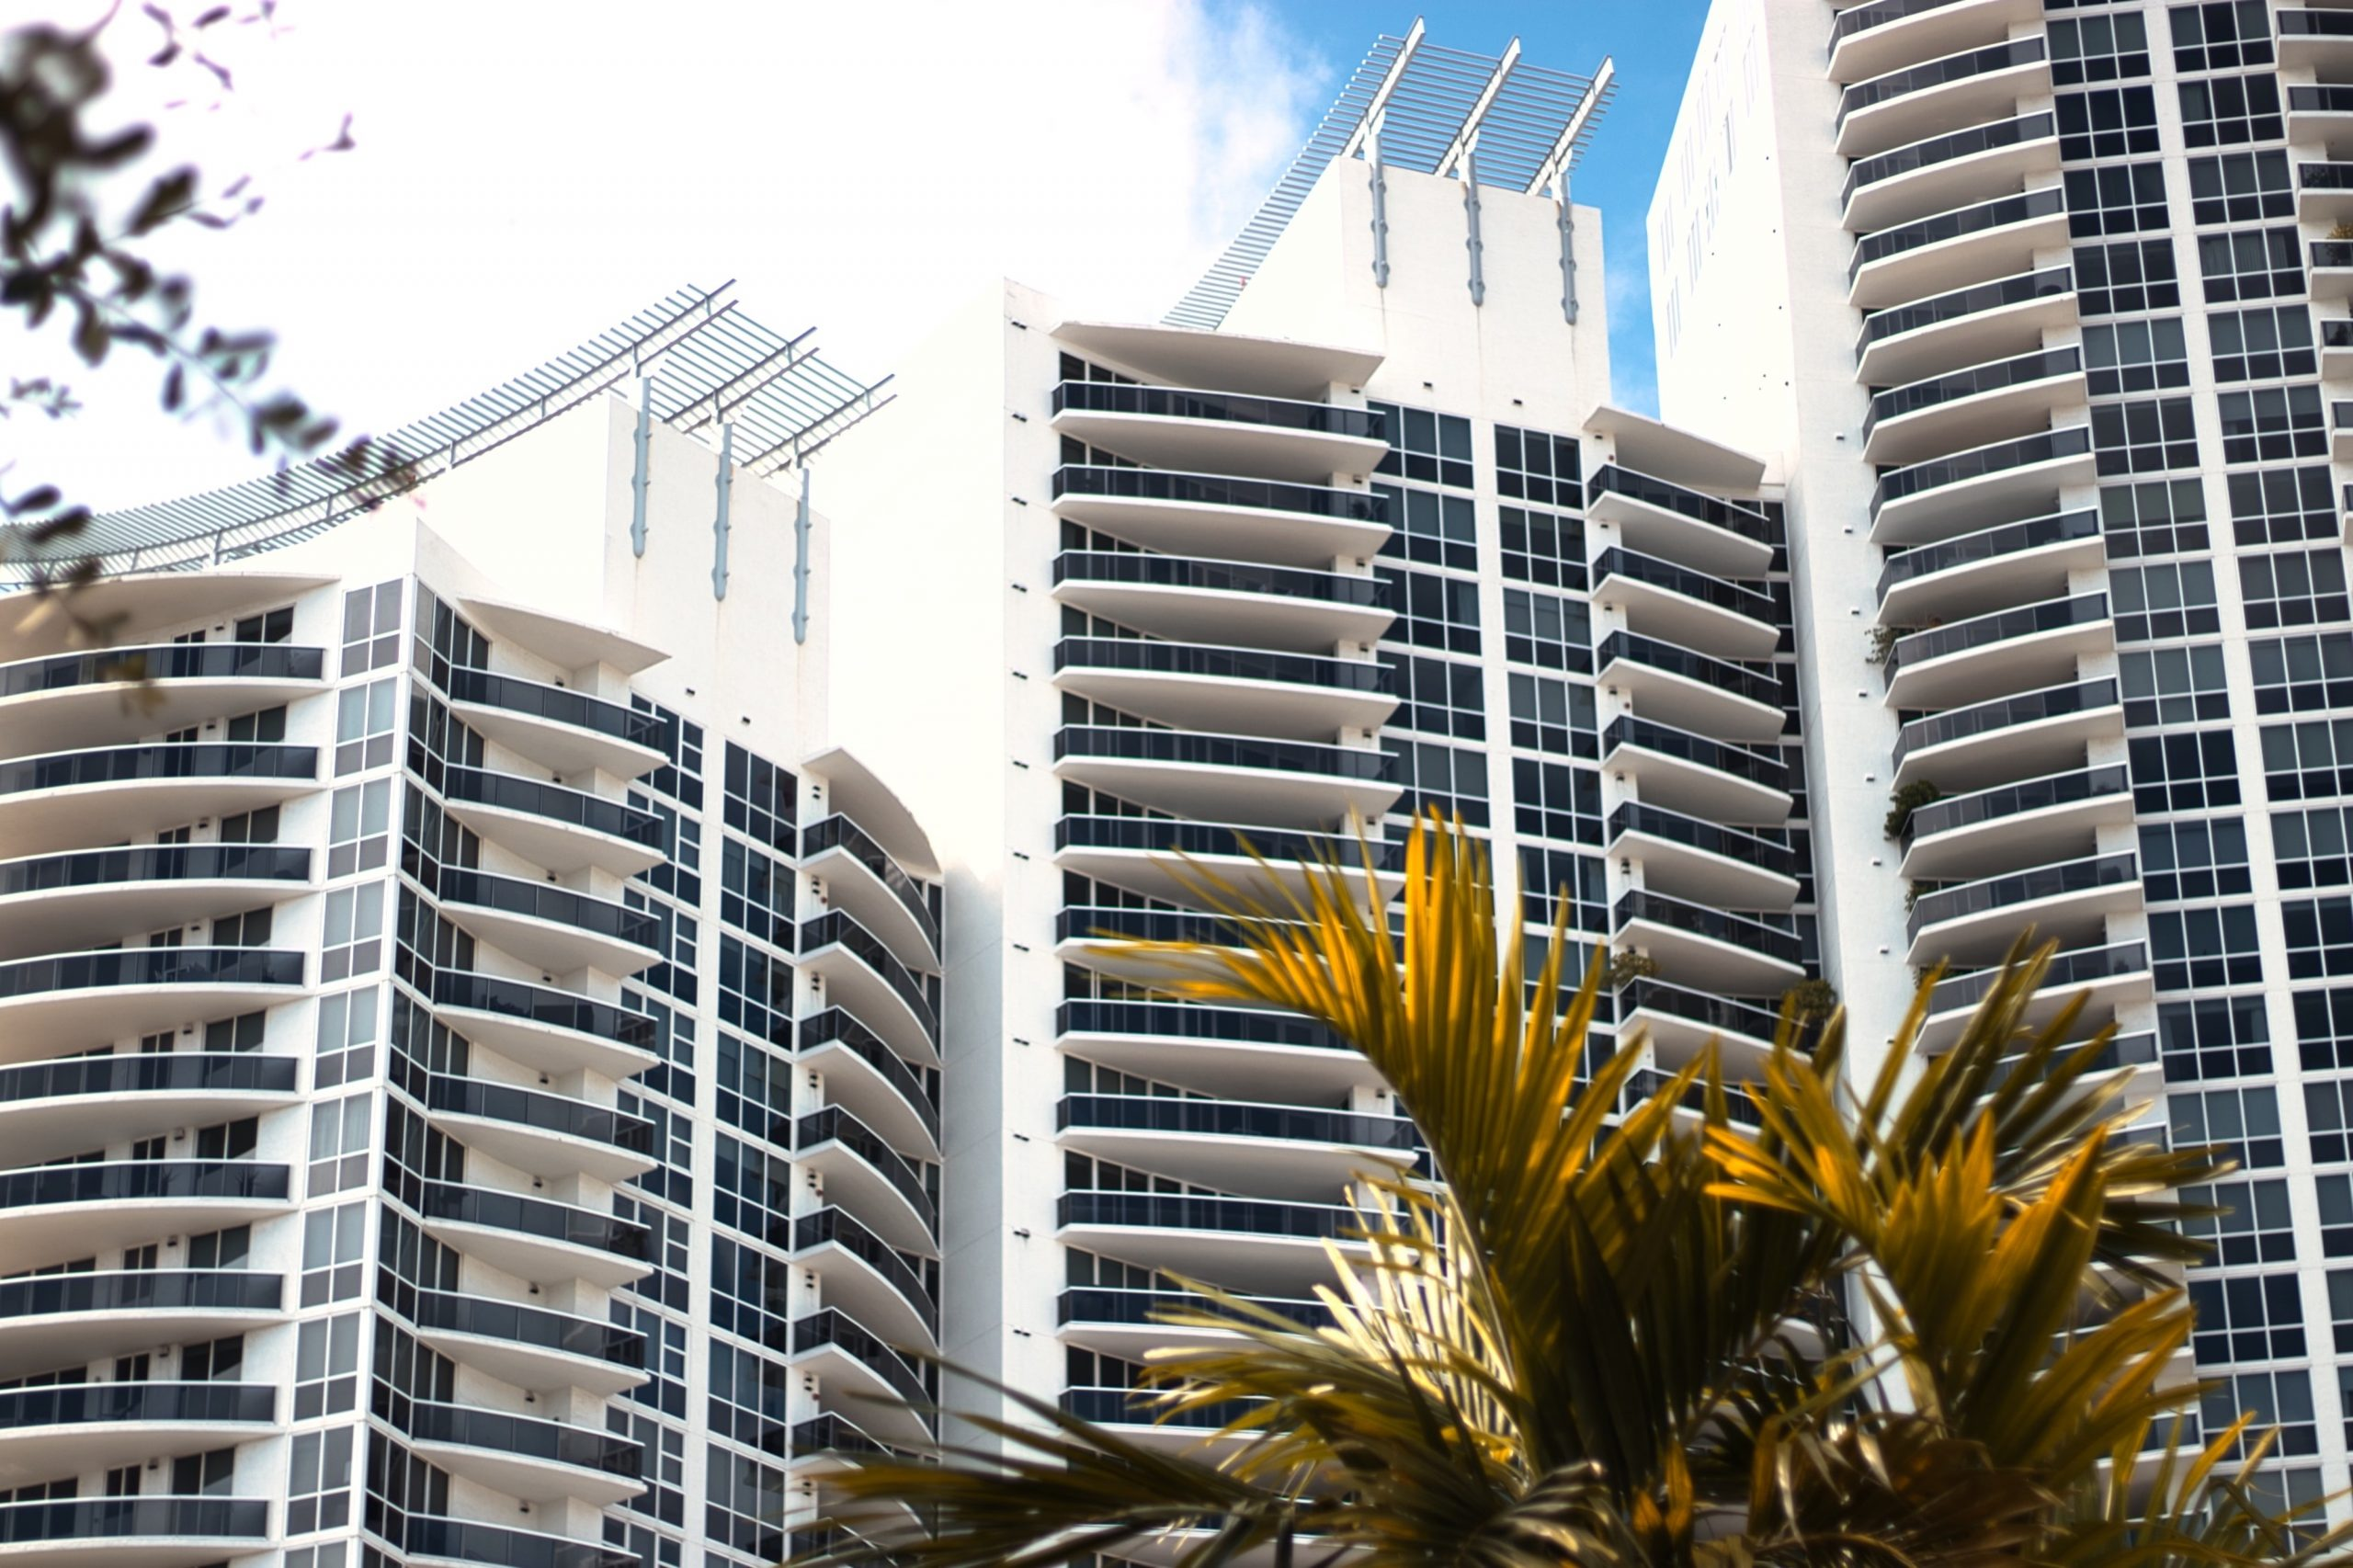 Condo & HOA Communication: How to Do It Effectively